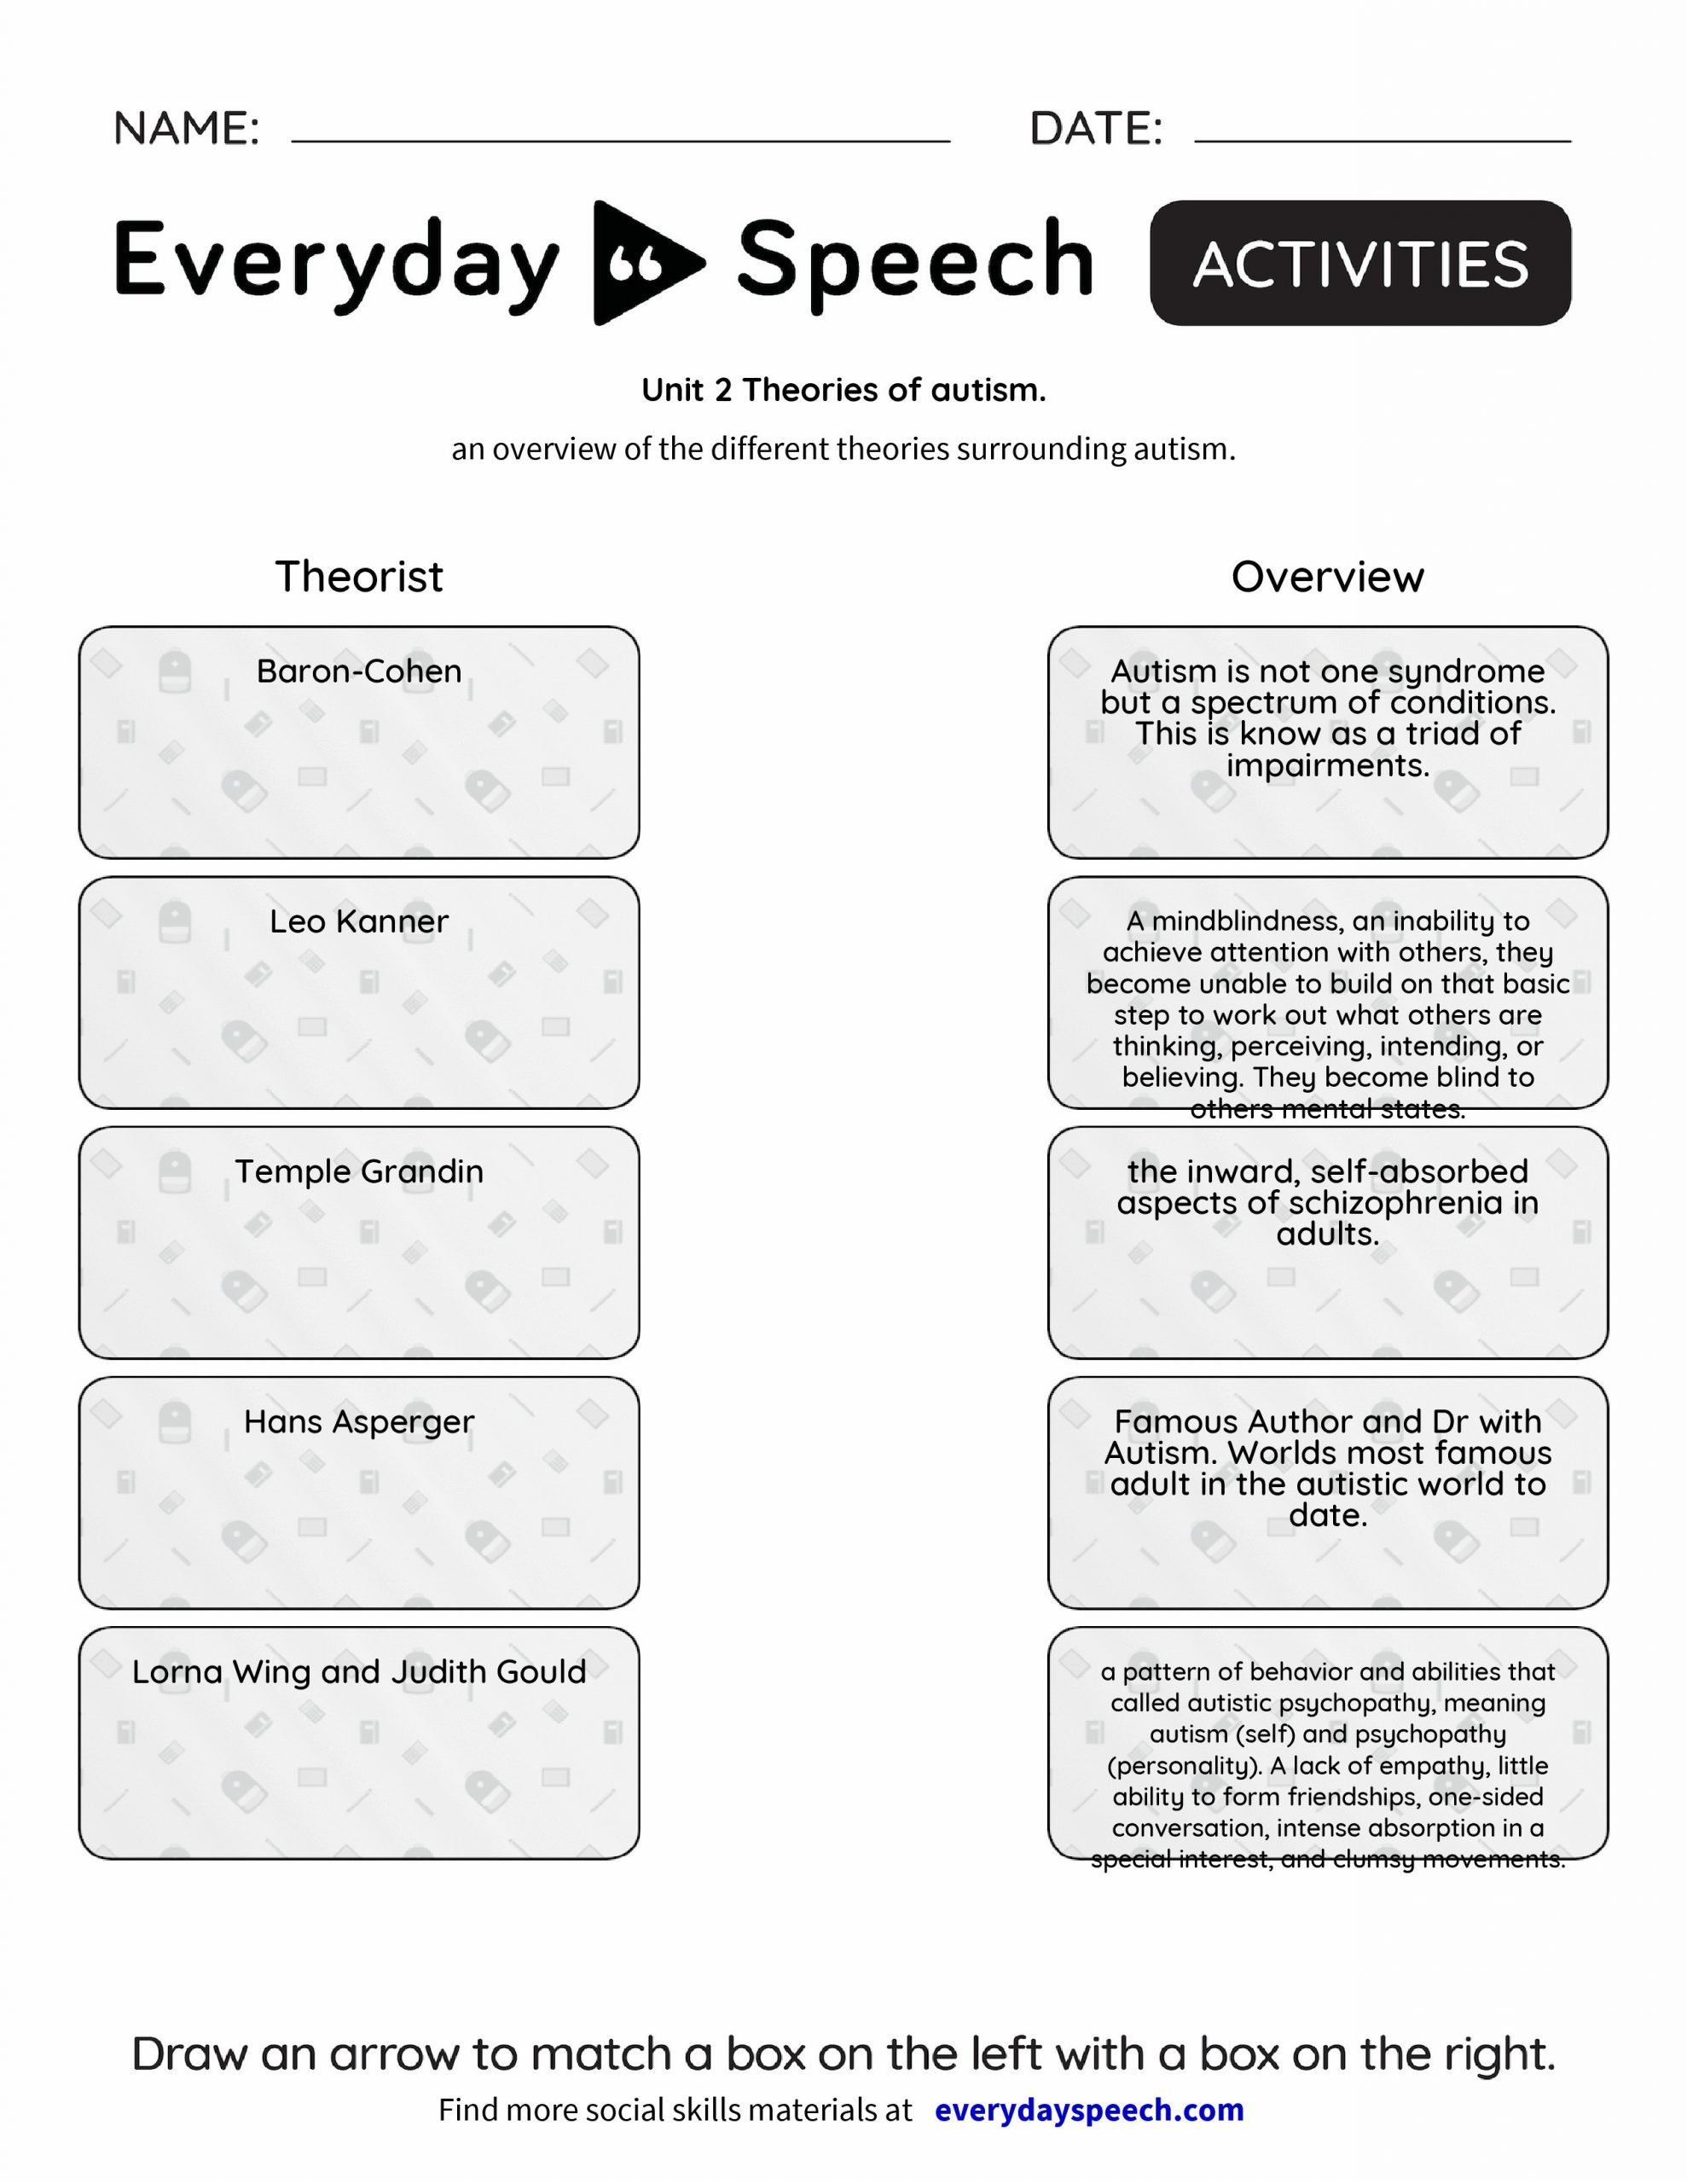 unit 2 theories of autism matching worksheet